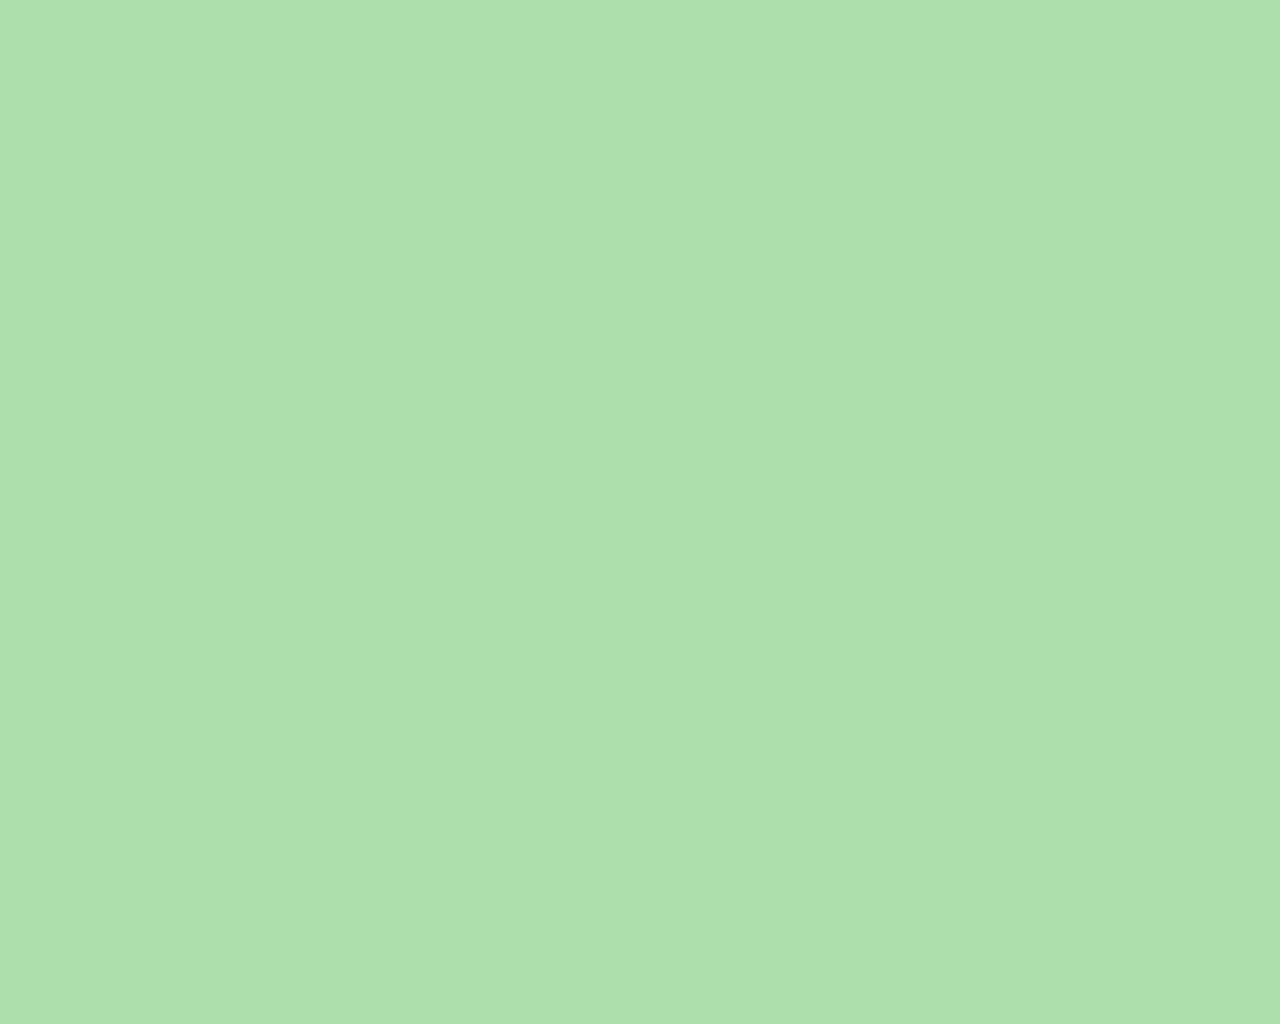 1280x1024 Light Moss Green Solid Color Background